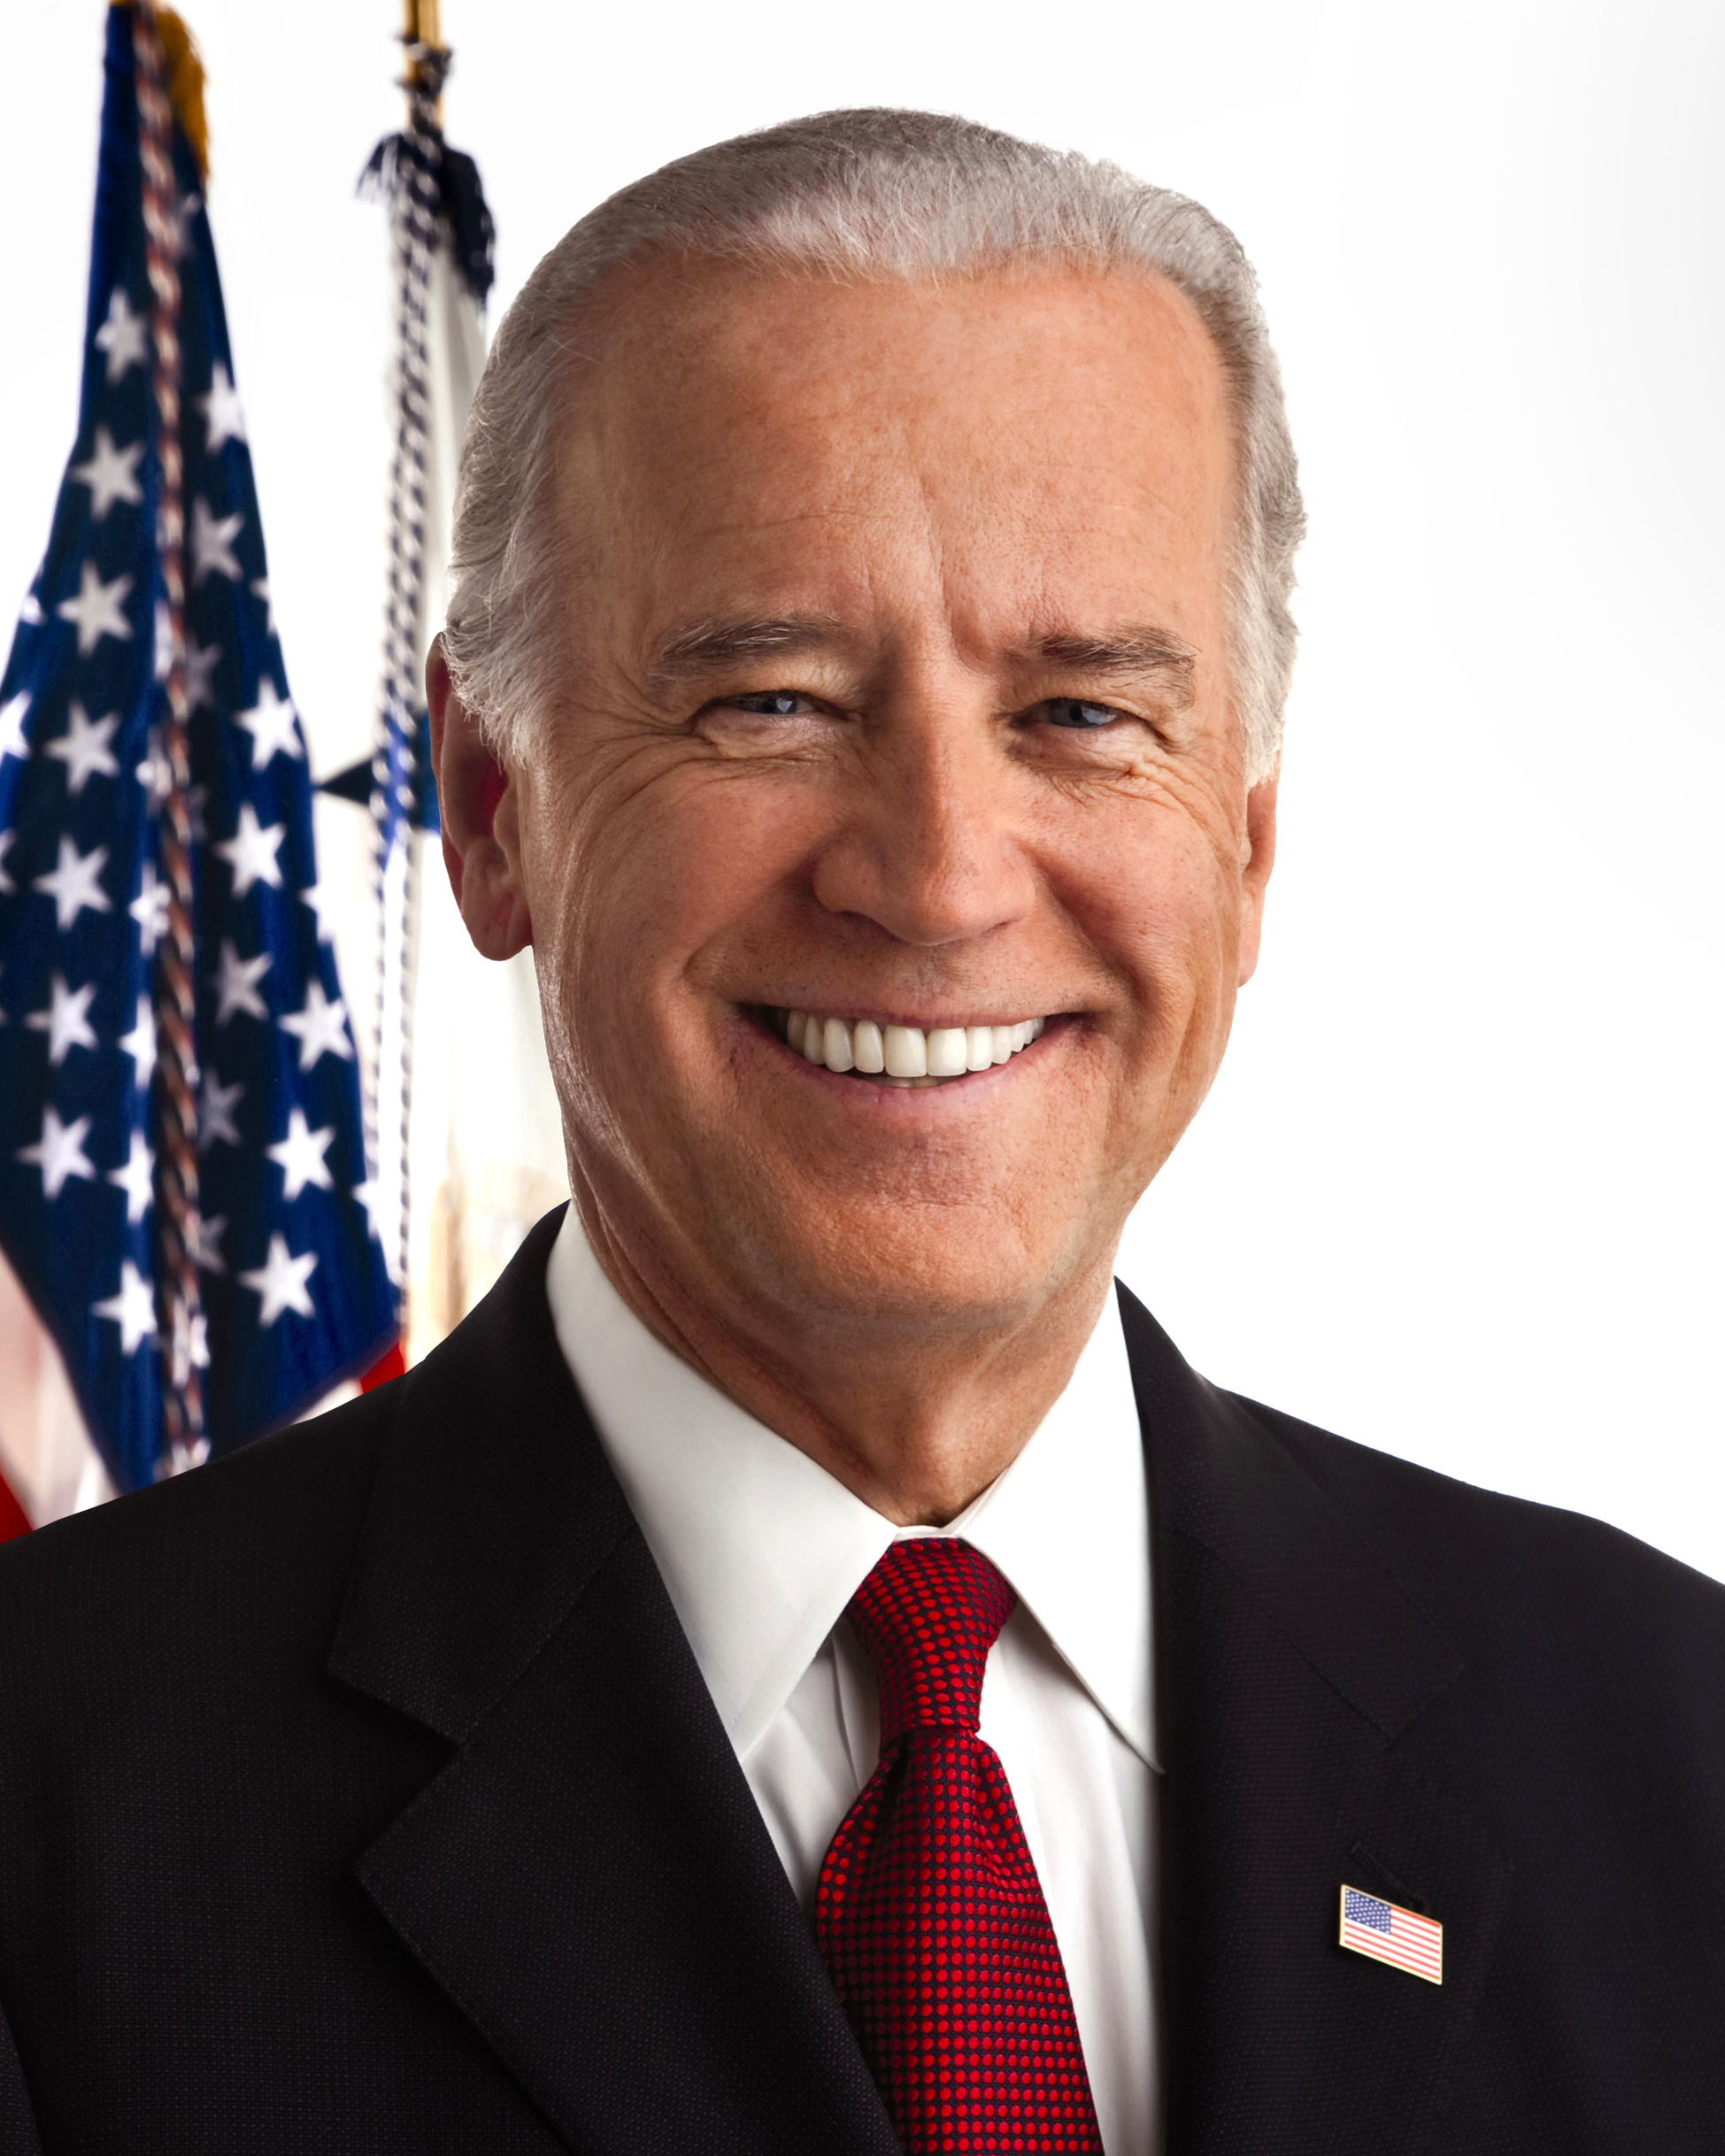 File:Joe Biden officia...